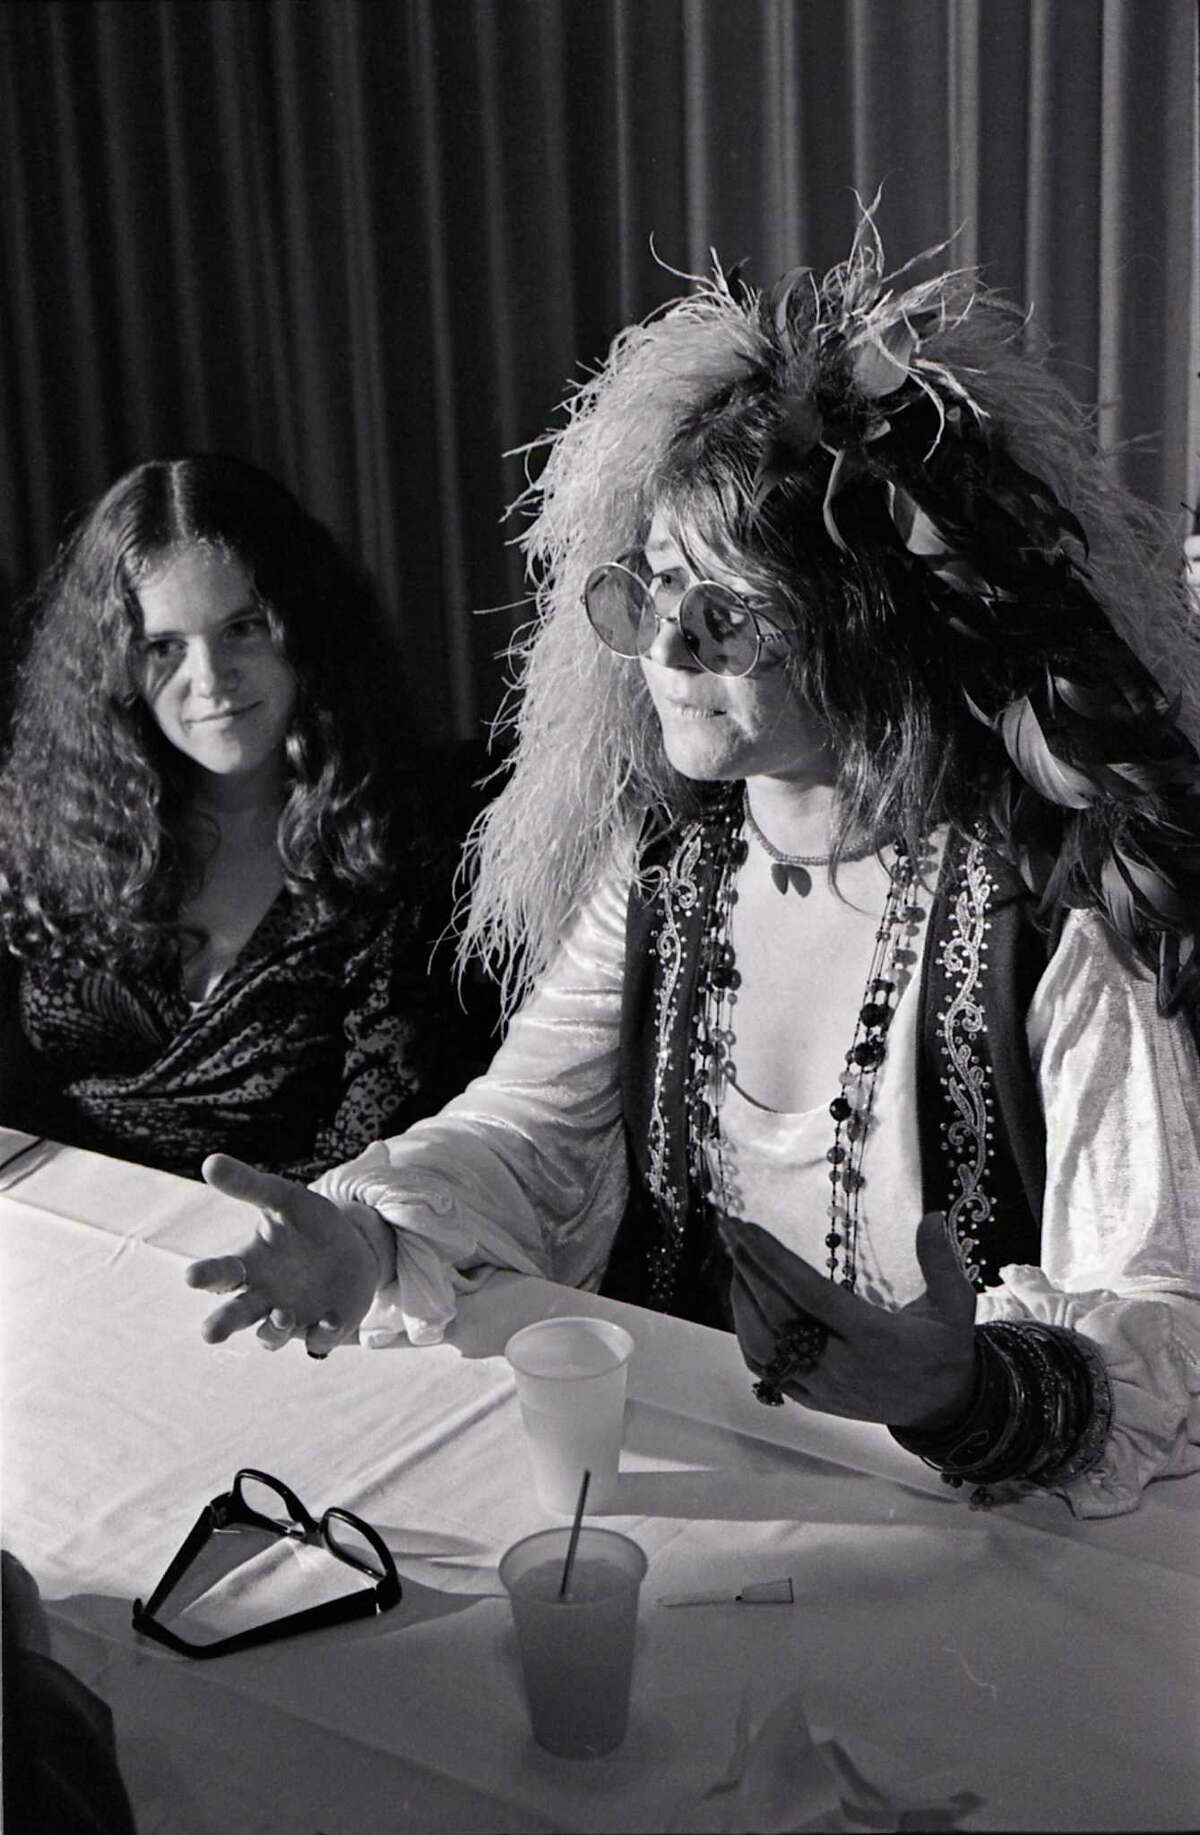 08/15/1970 - singer Janis Joplin at a press conference held before her high school reunion at the Goodhue Hotel in Port Arthur, Texas, August 15, 1970. It was the tenth year reunion for the Thomas Jefferson High School class of 1960. Sitting with Joplin is her sister, Laura. David Nance / Houston Chronicle